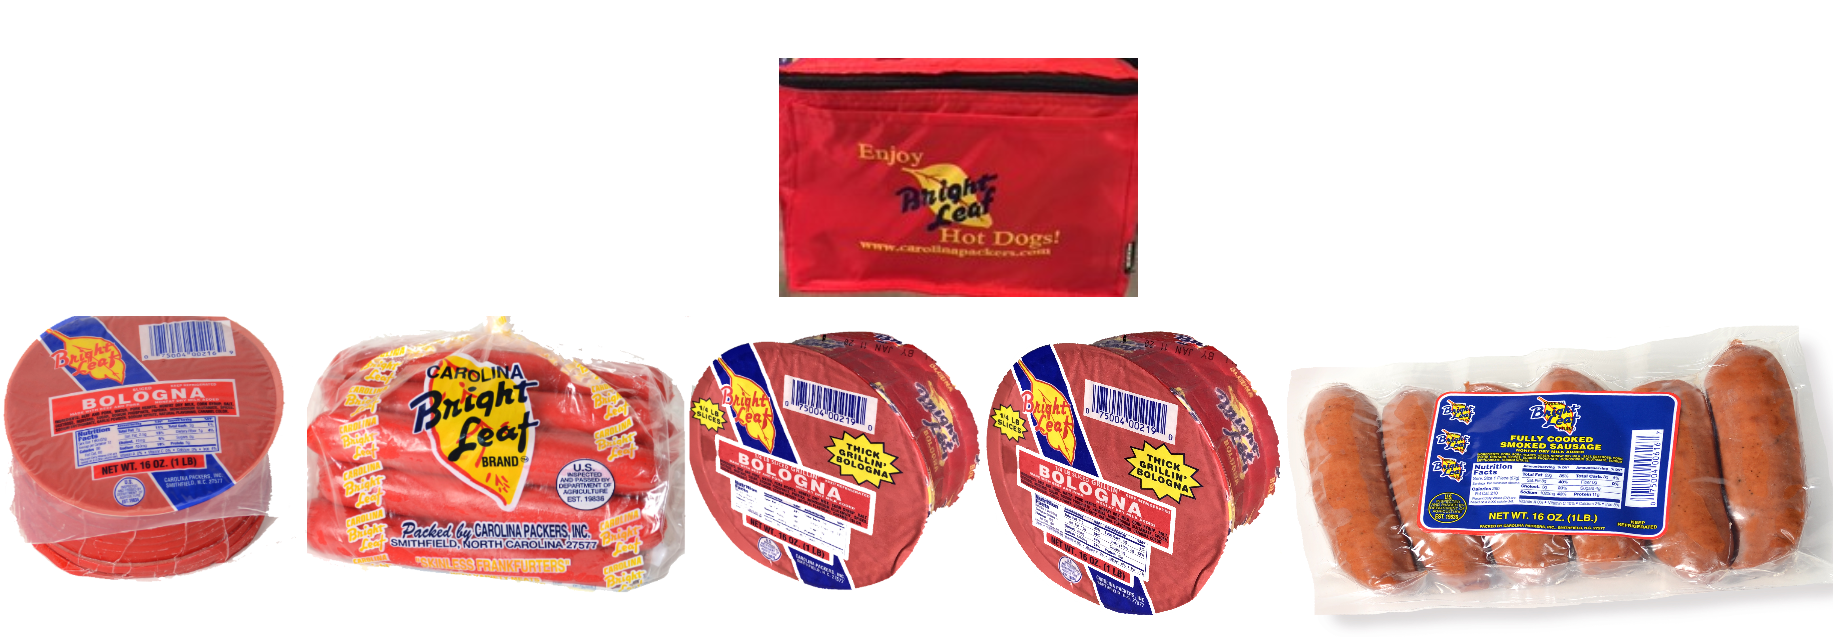 Bright Leaf Thick Grillin' Bologna Gift Bag (2-Thick Grillin' Bologna, 1-Regular Bologna, 1-Hot Dog, 1-Smoked Sausage)